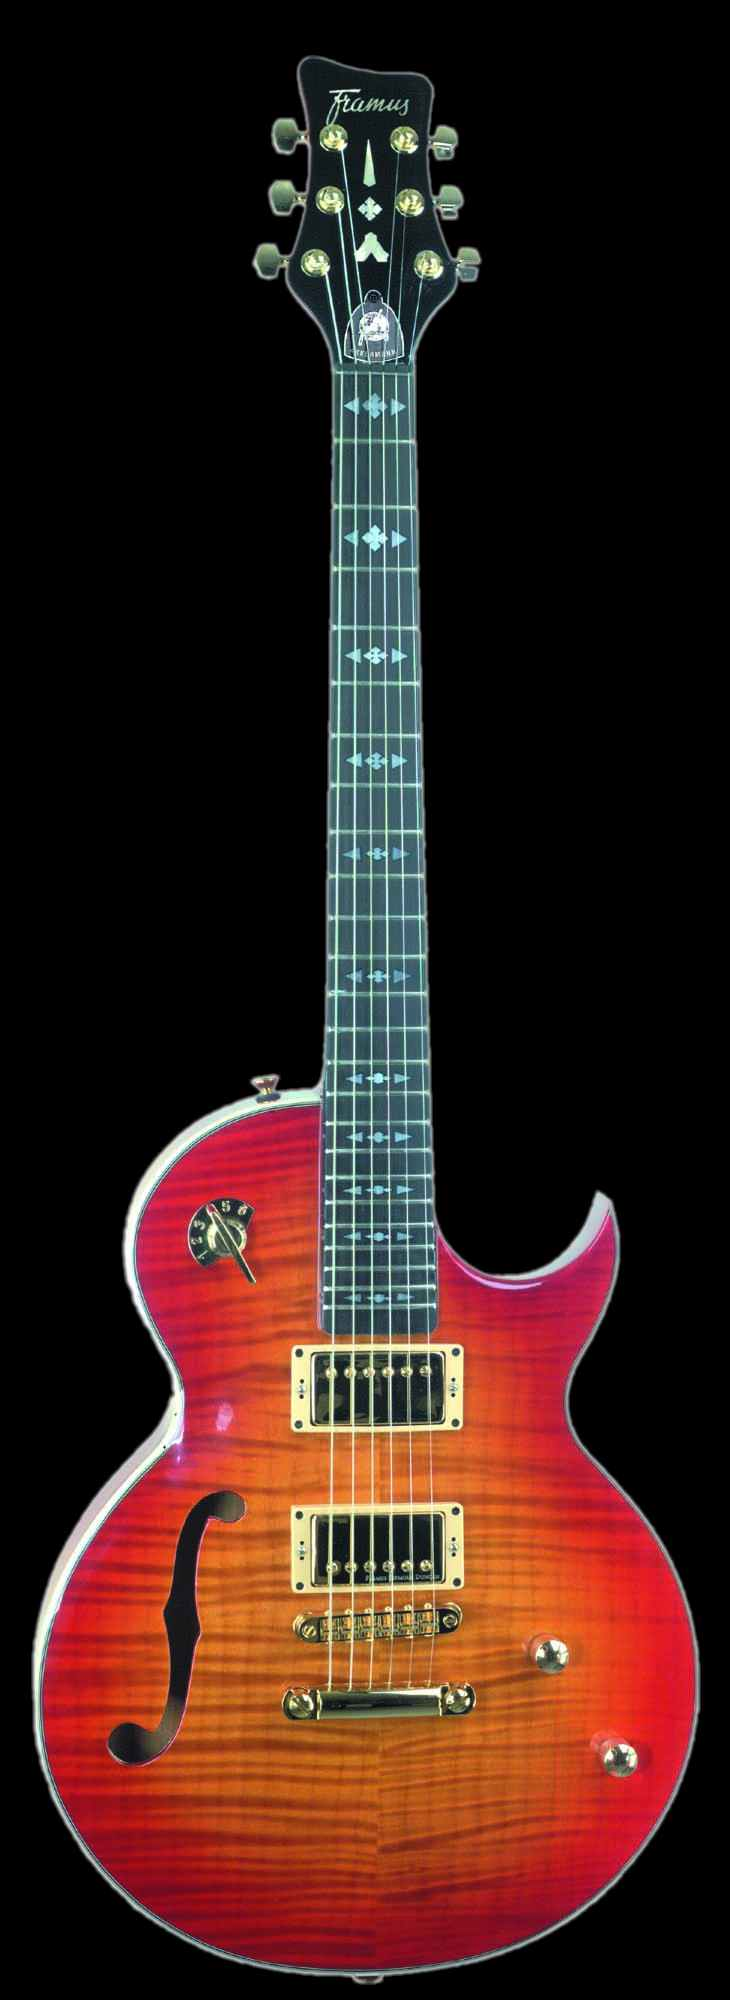 framus akkermann cherry sb